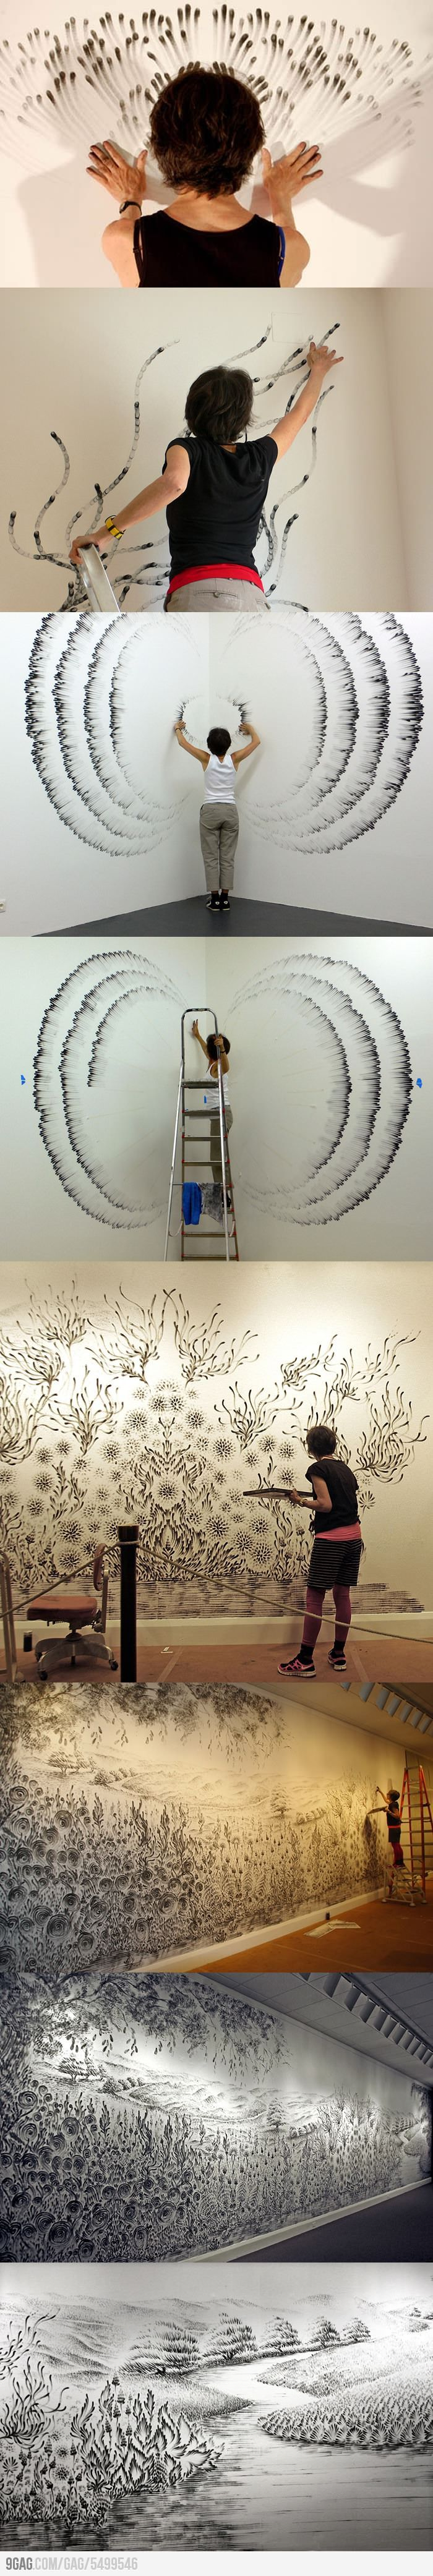 Finger drawings by Judith Braun WOW!